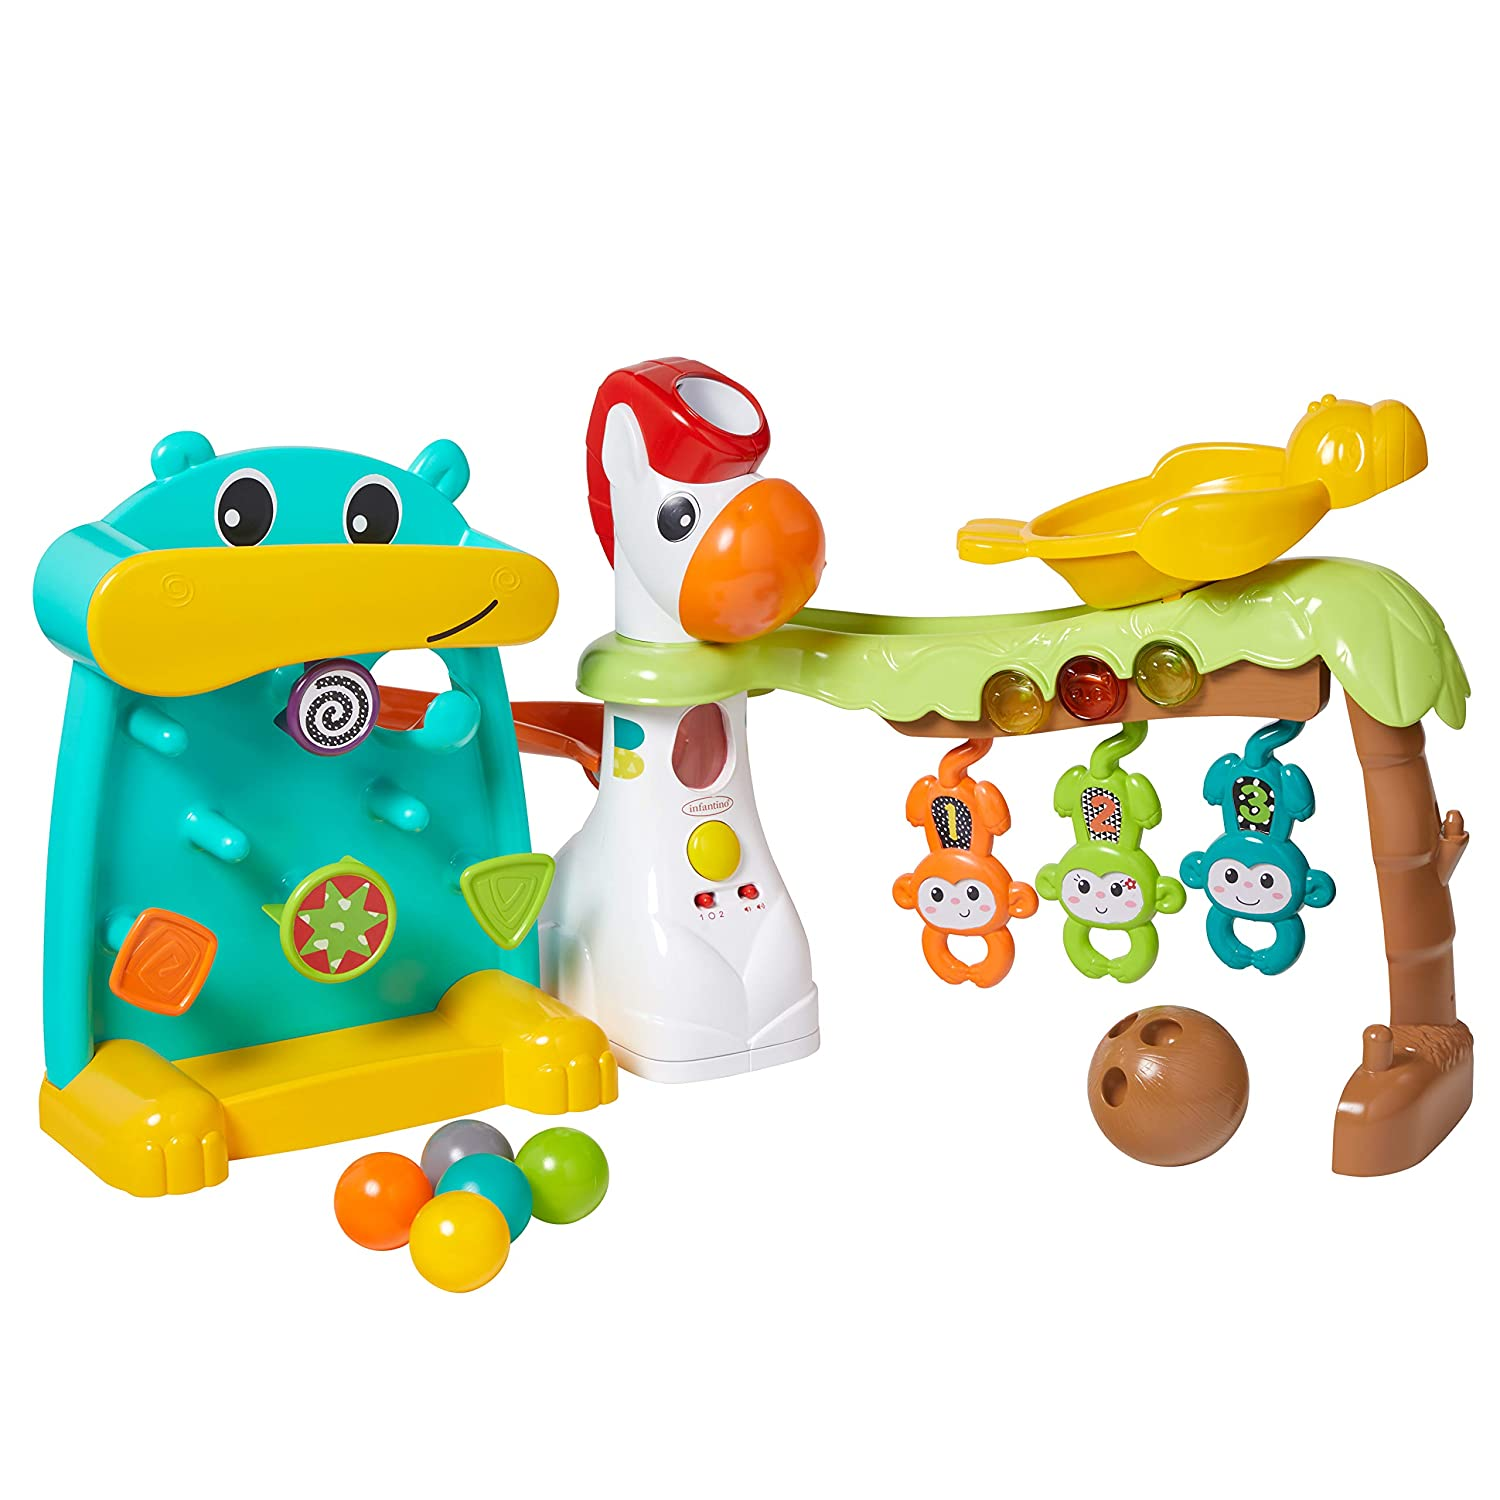 Infantino 4-in-1 Grow with Me Playland, Multi